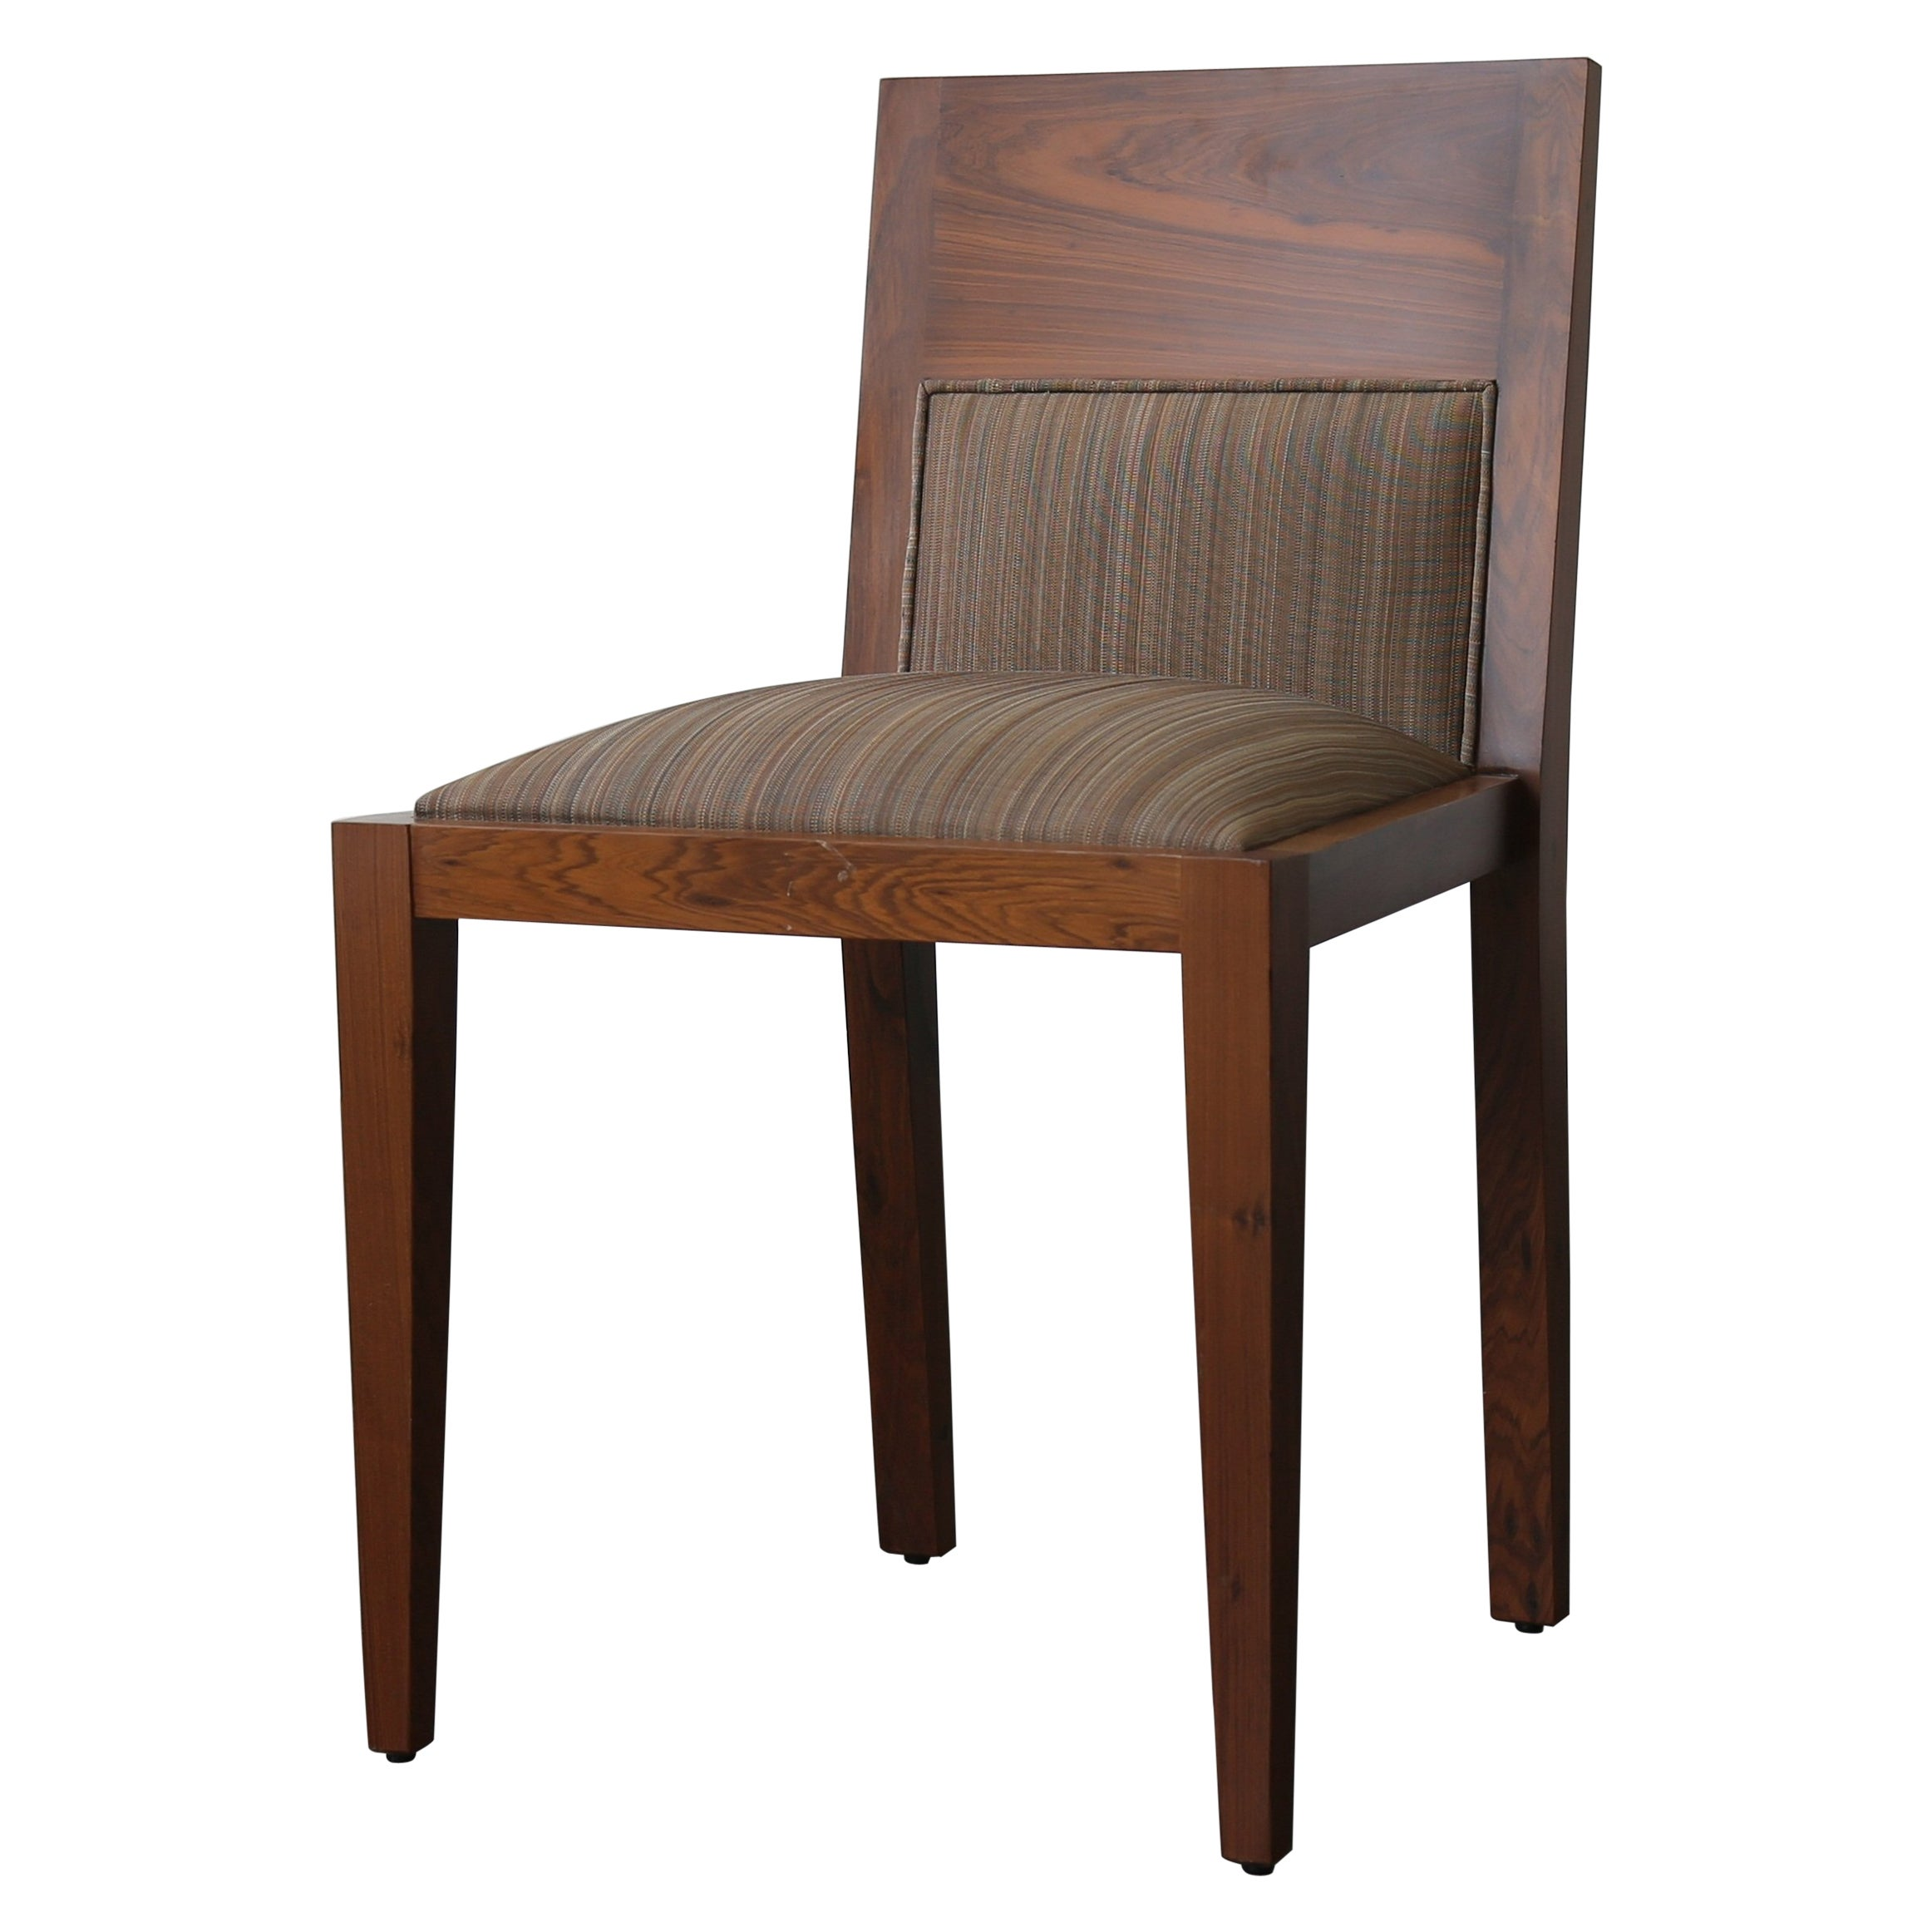 Contemporary Palermo Hollywood Upholstered Dining Chair from Costantini